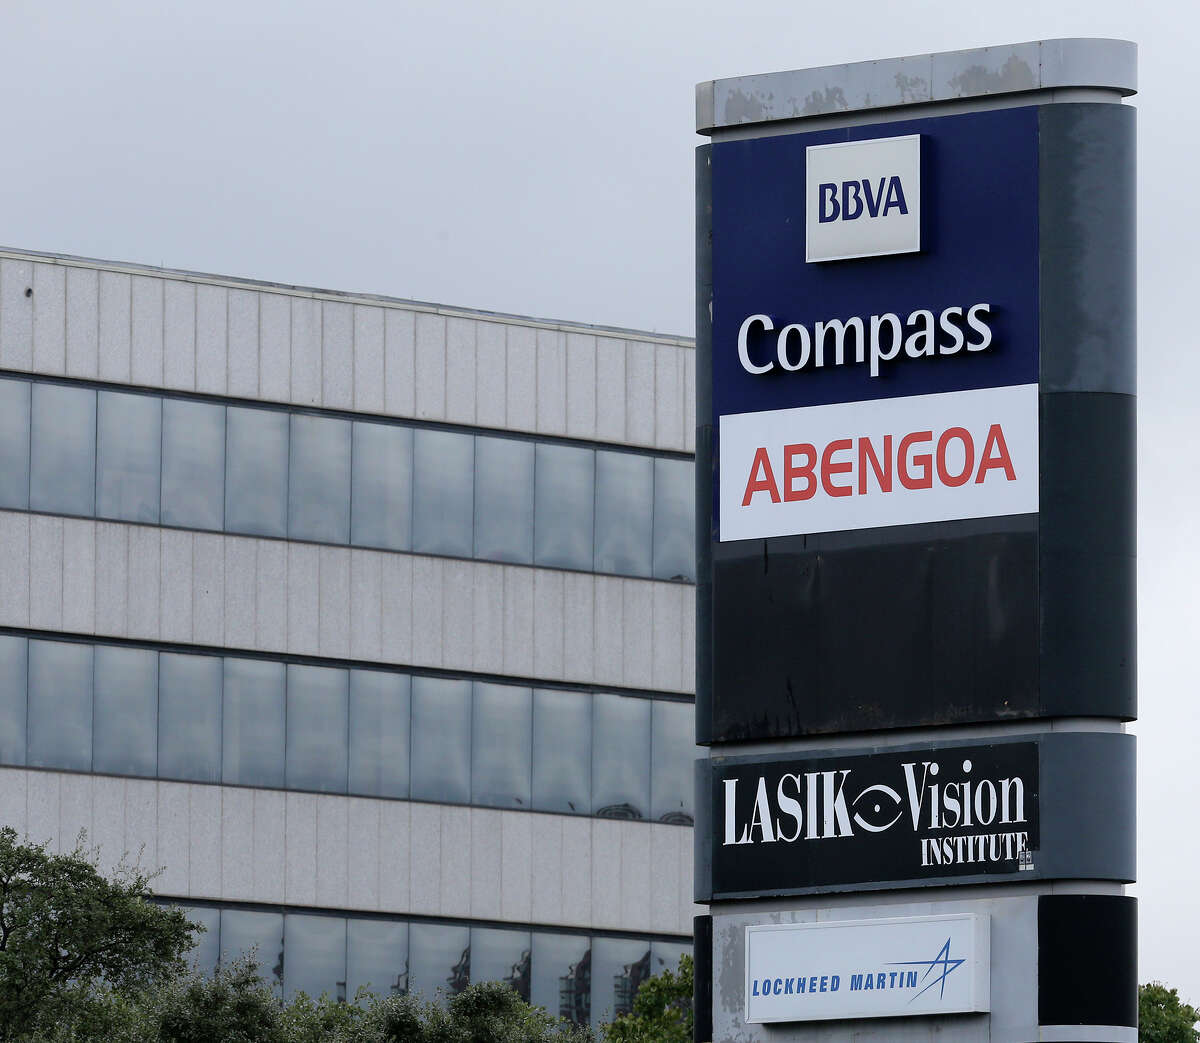 Abengoa is the Spanish multinational company whose subsidiary signed a contract with the San Antonio Water System to build the Vista Ridge pipeline. The company opened an office in San Antonio after the city signed the deal to get water from the pipeline.